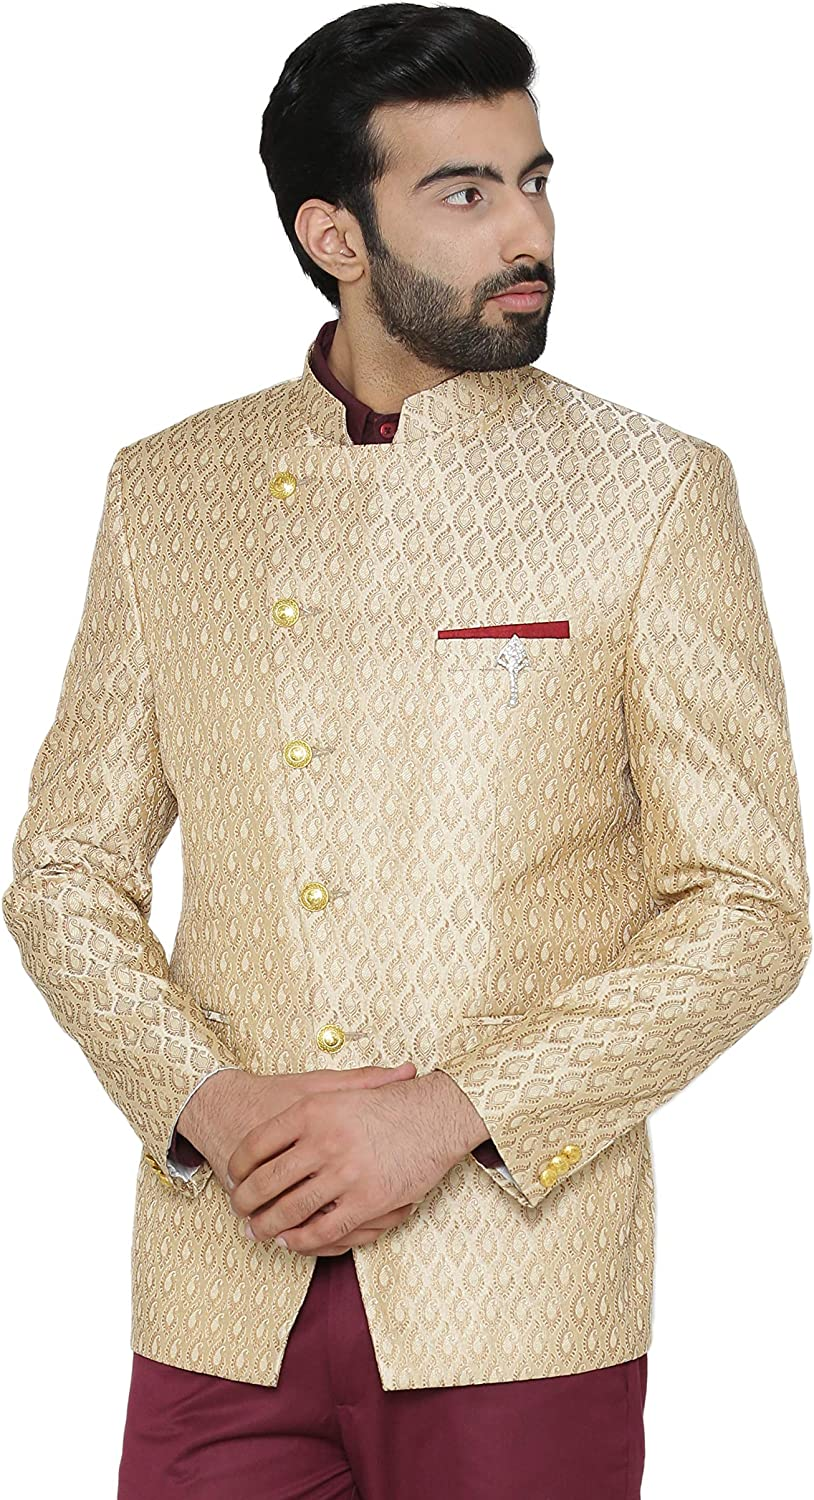 WINTAGE Men's New item Banarsi Rayon Cotton Super sale period limited Casual and Indian Festive Jod